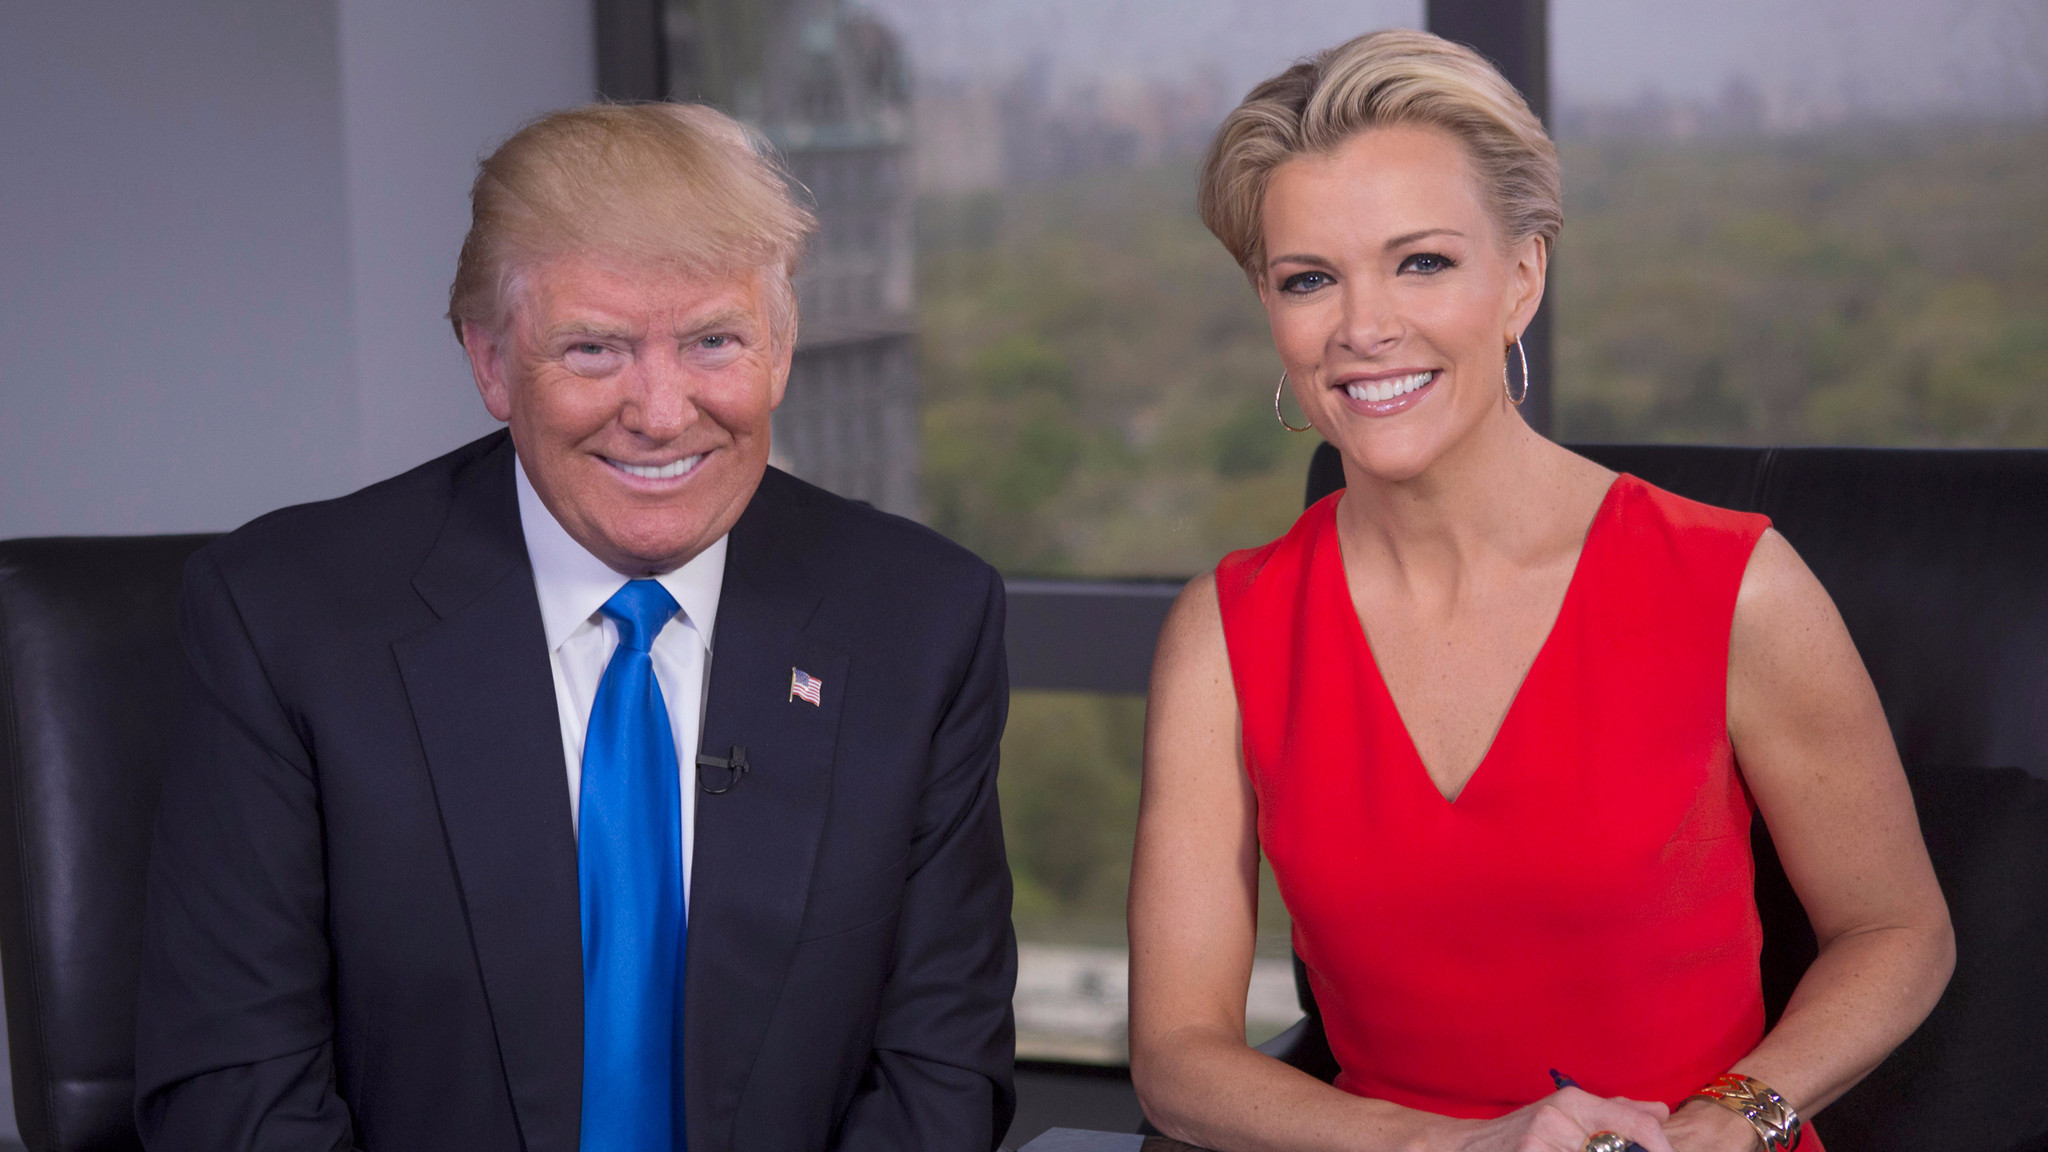 Ct-donald-trump-megyn-kelly-fox-news-interview-20160517